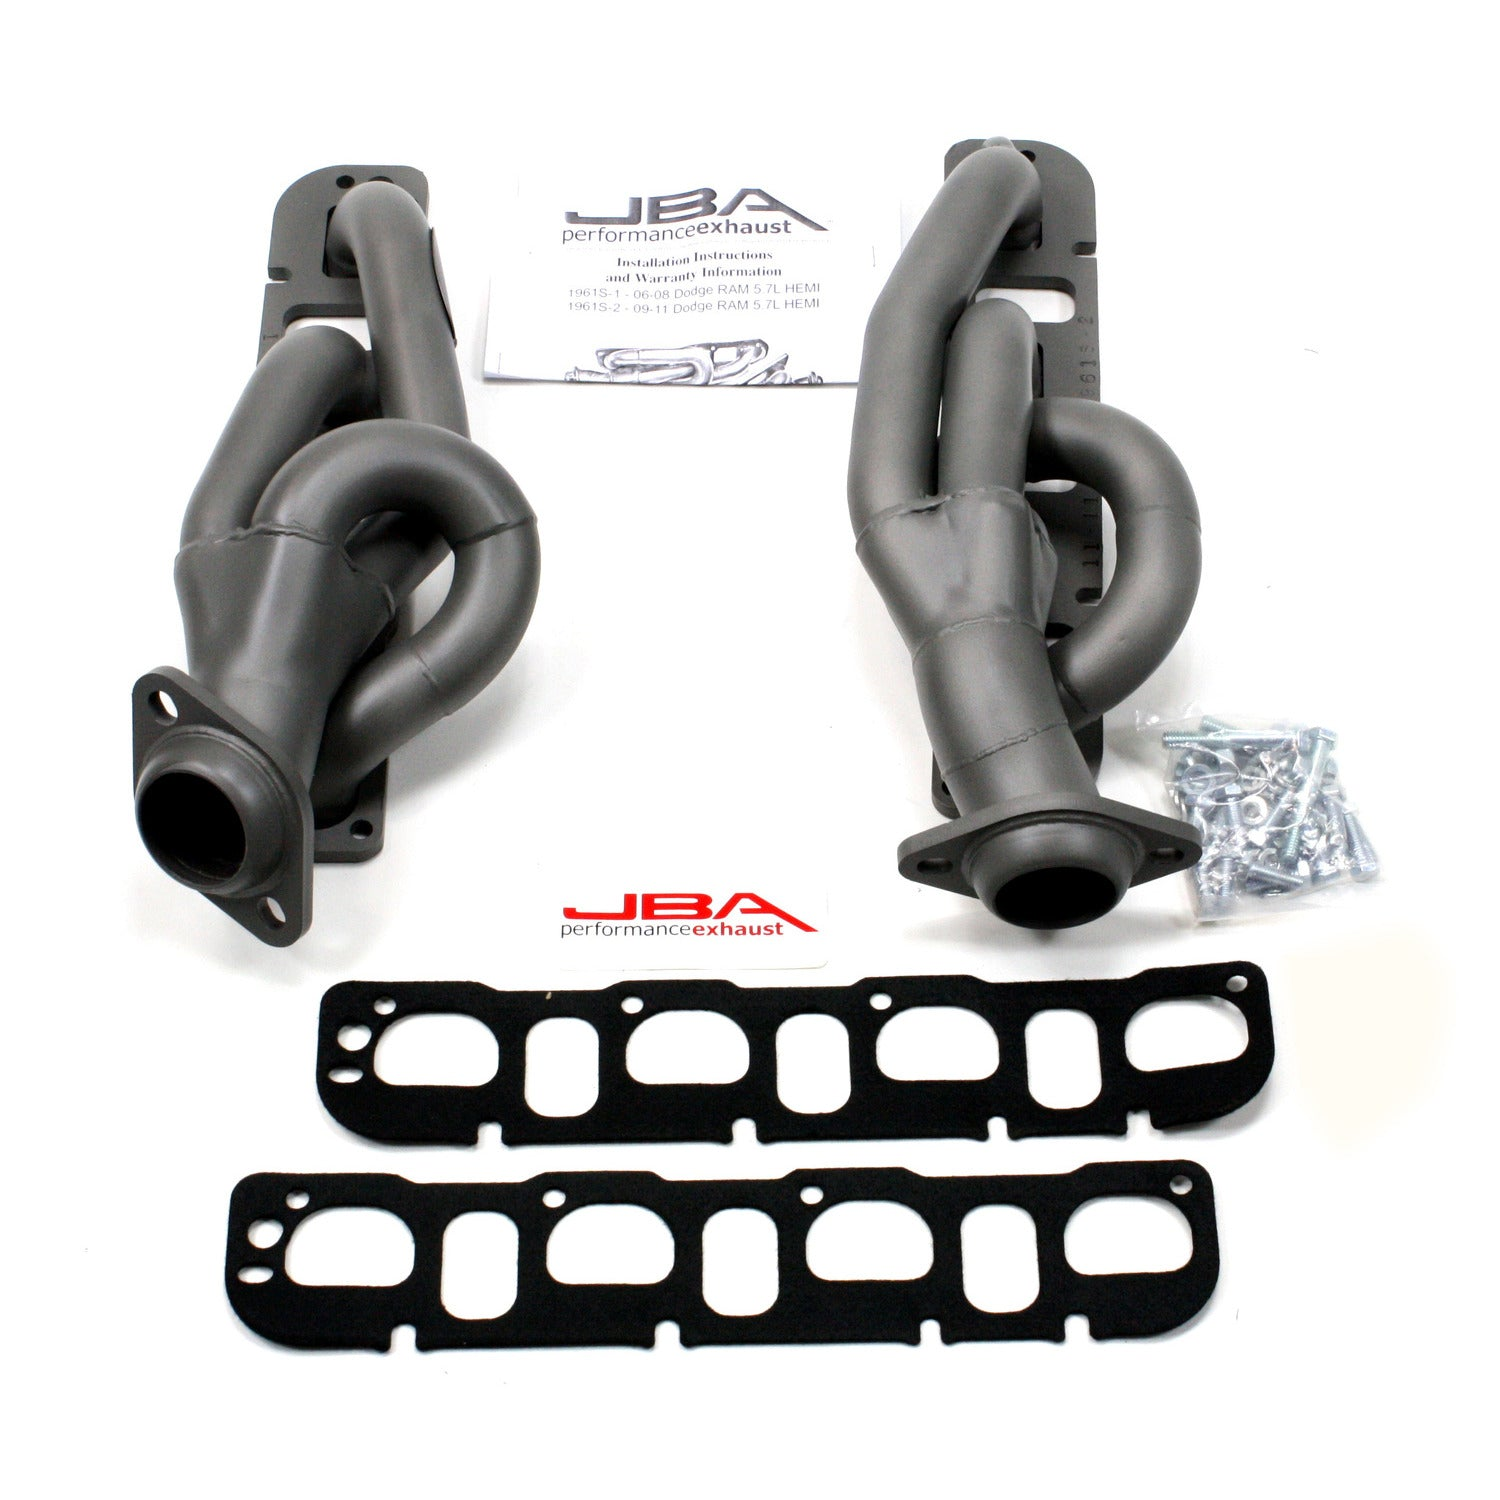 "JBA Performance Exhaust 1961S-2JT 1 5/8"" Header Shorty Stainless Steel 09-18 Ram 5.7L Hemi 1500 2&4 Wheel Drive Titanium Ceramic"